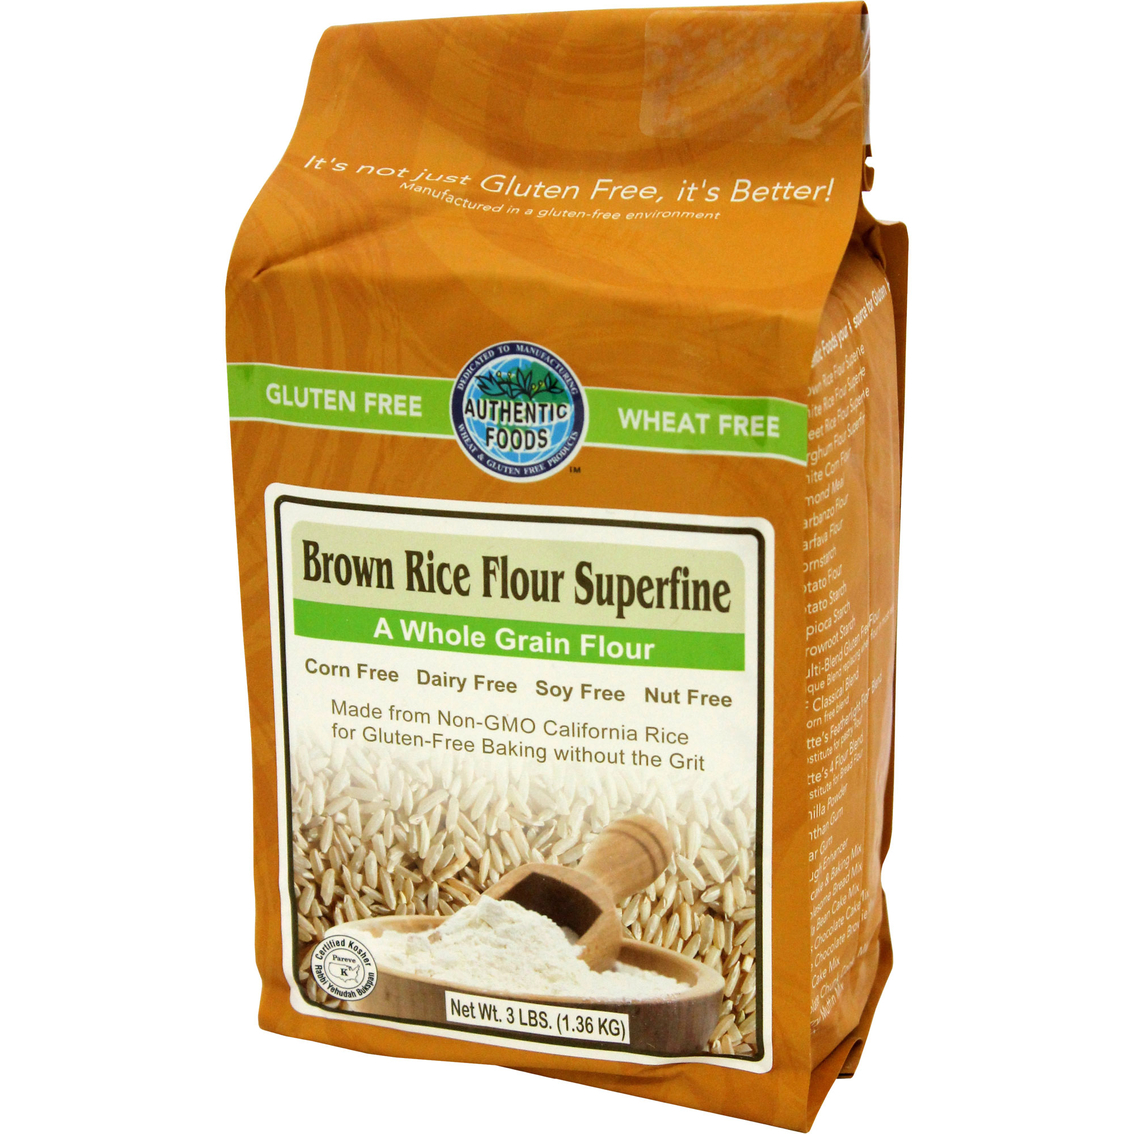 Authentic Foods Superfine Brown Rice Flour 6 Pk. | Bread